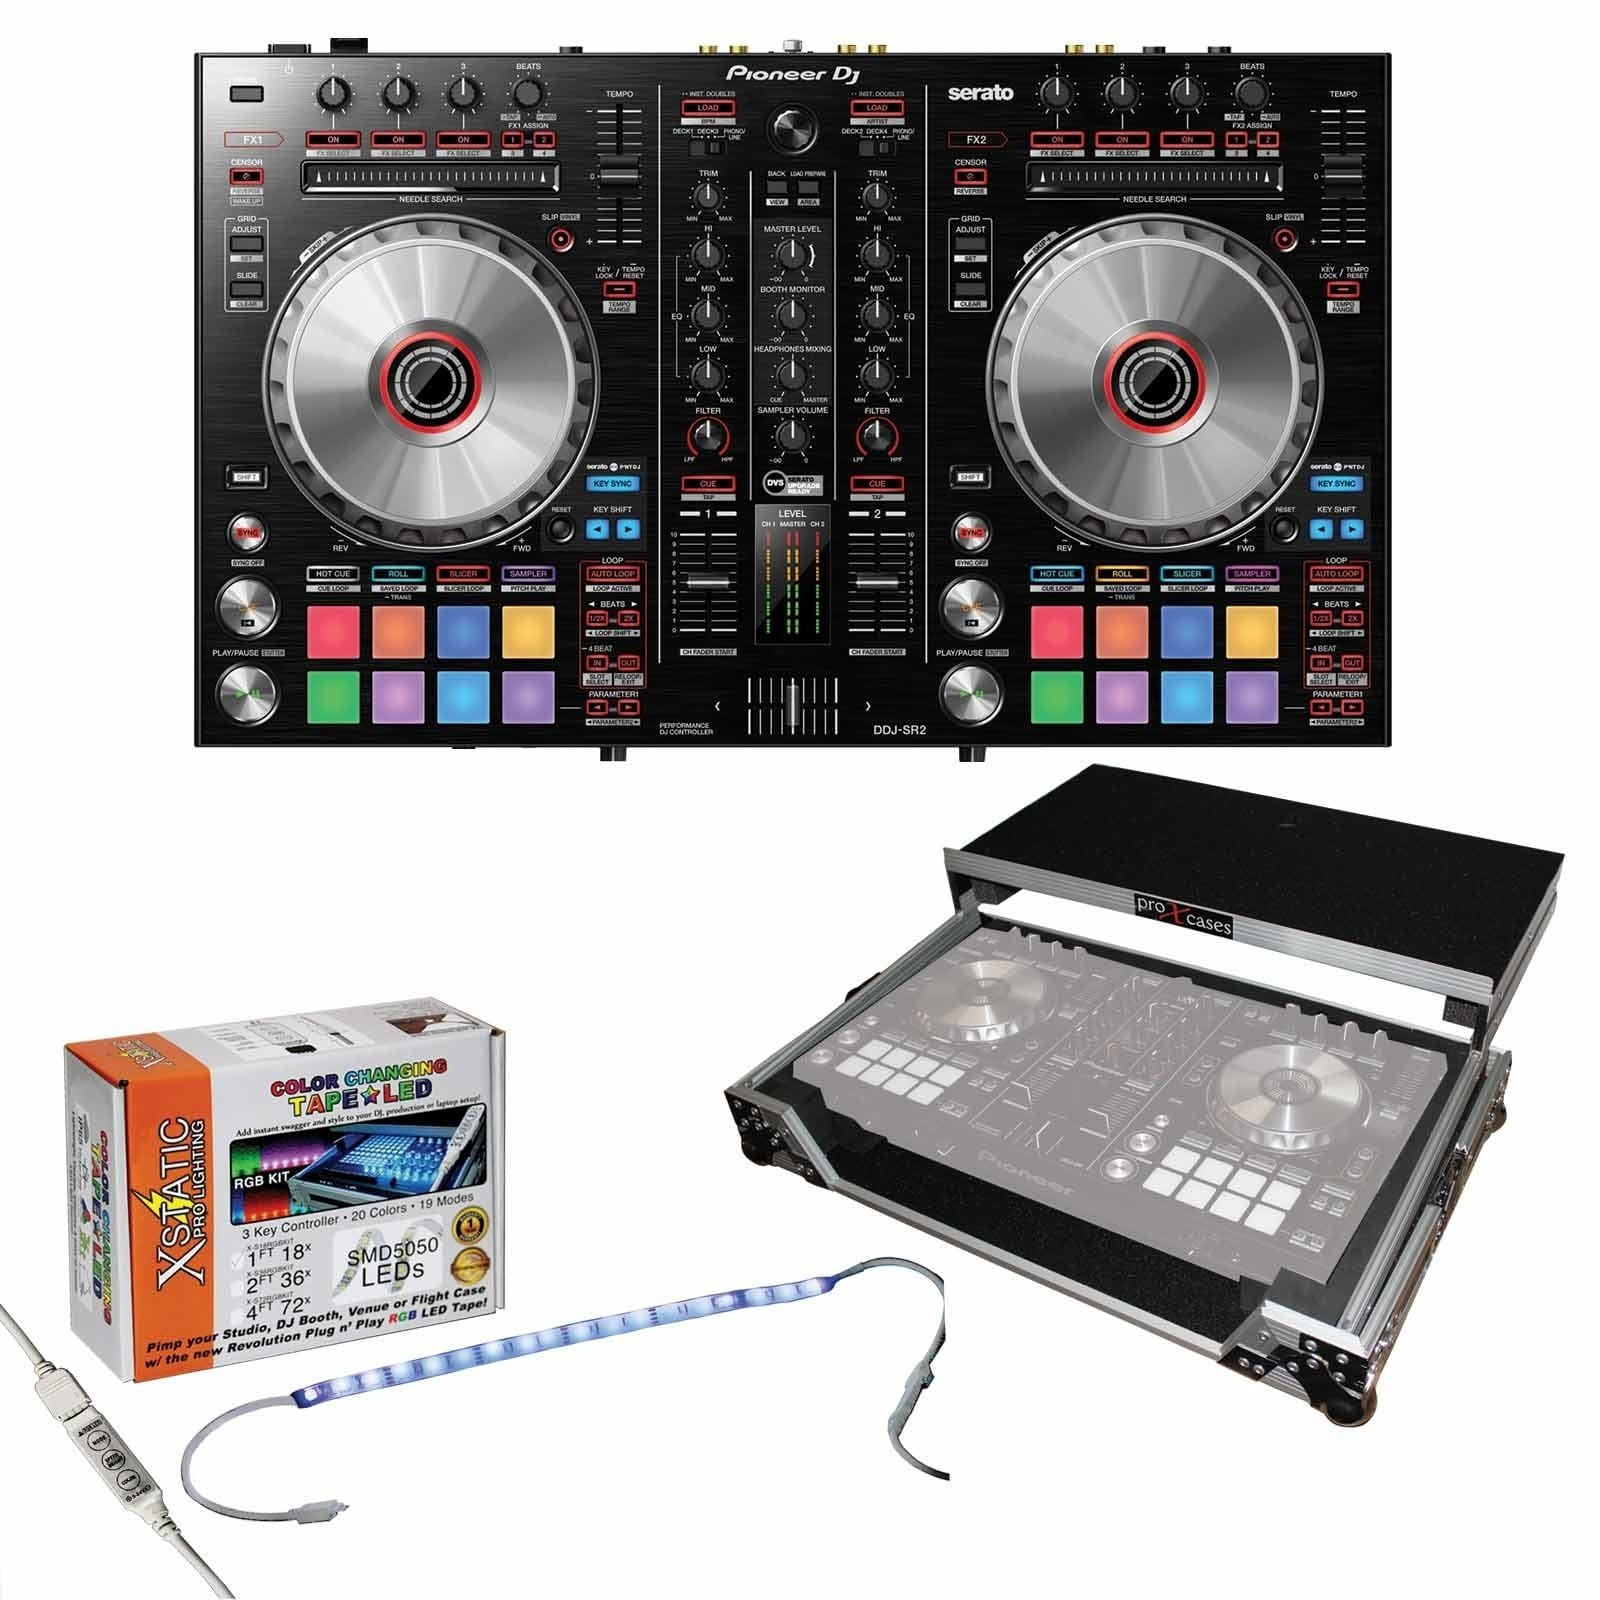 pioneer-dj-ddj-sr2-2-channel-serato-dj-controller-chrome-silver-flight-case-pa-1.jpg